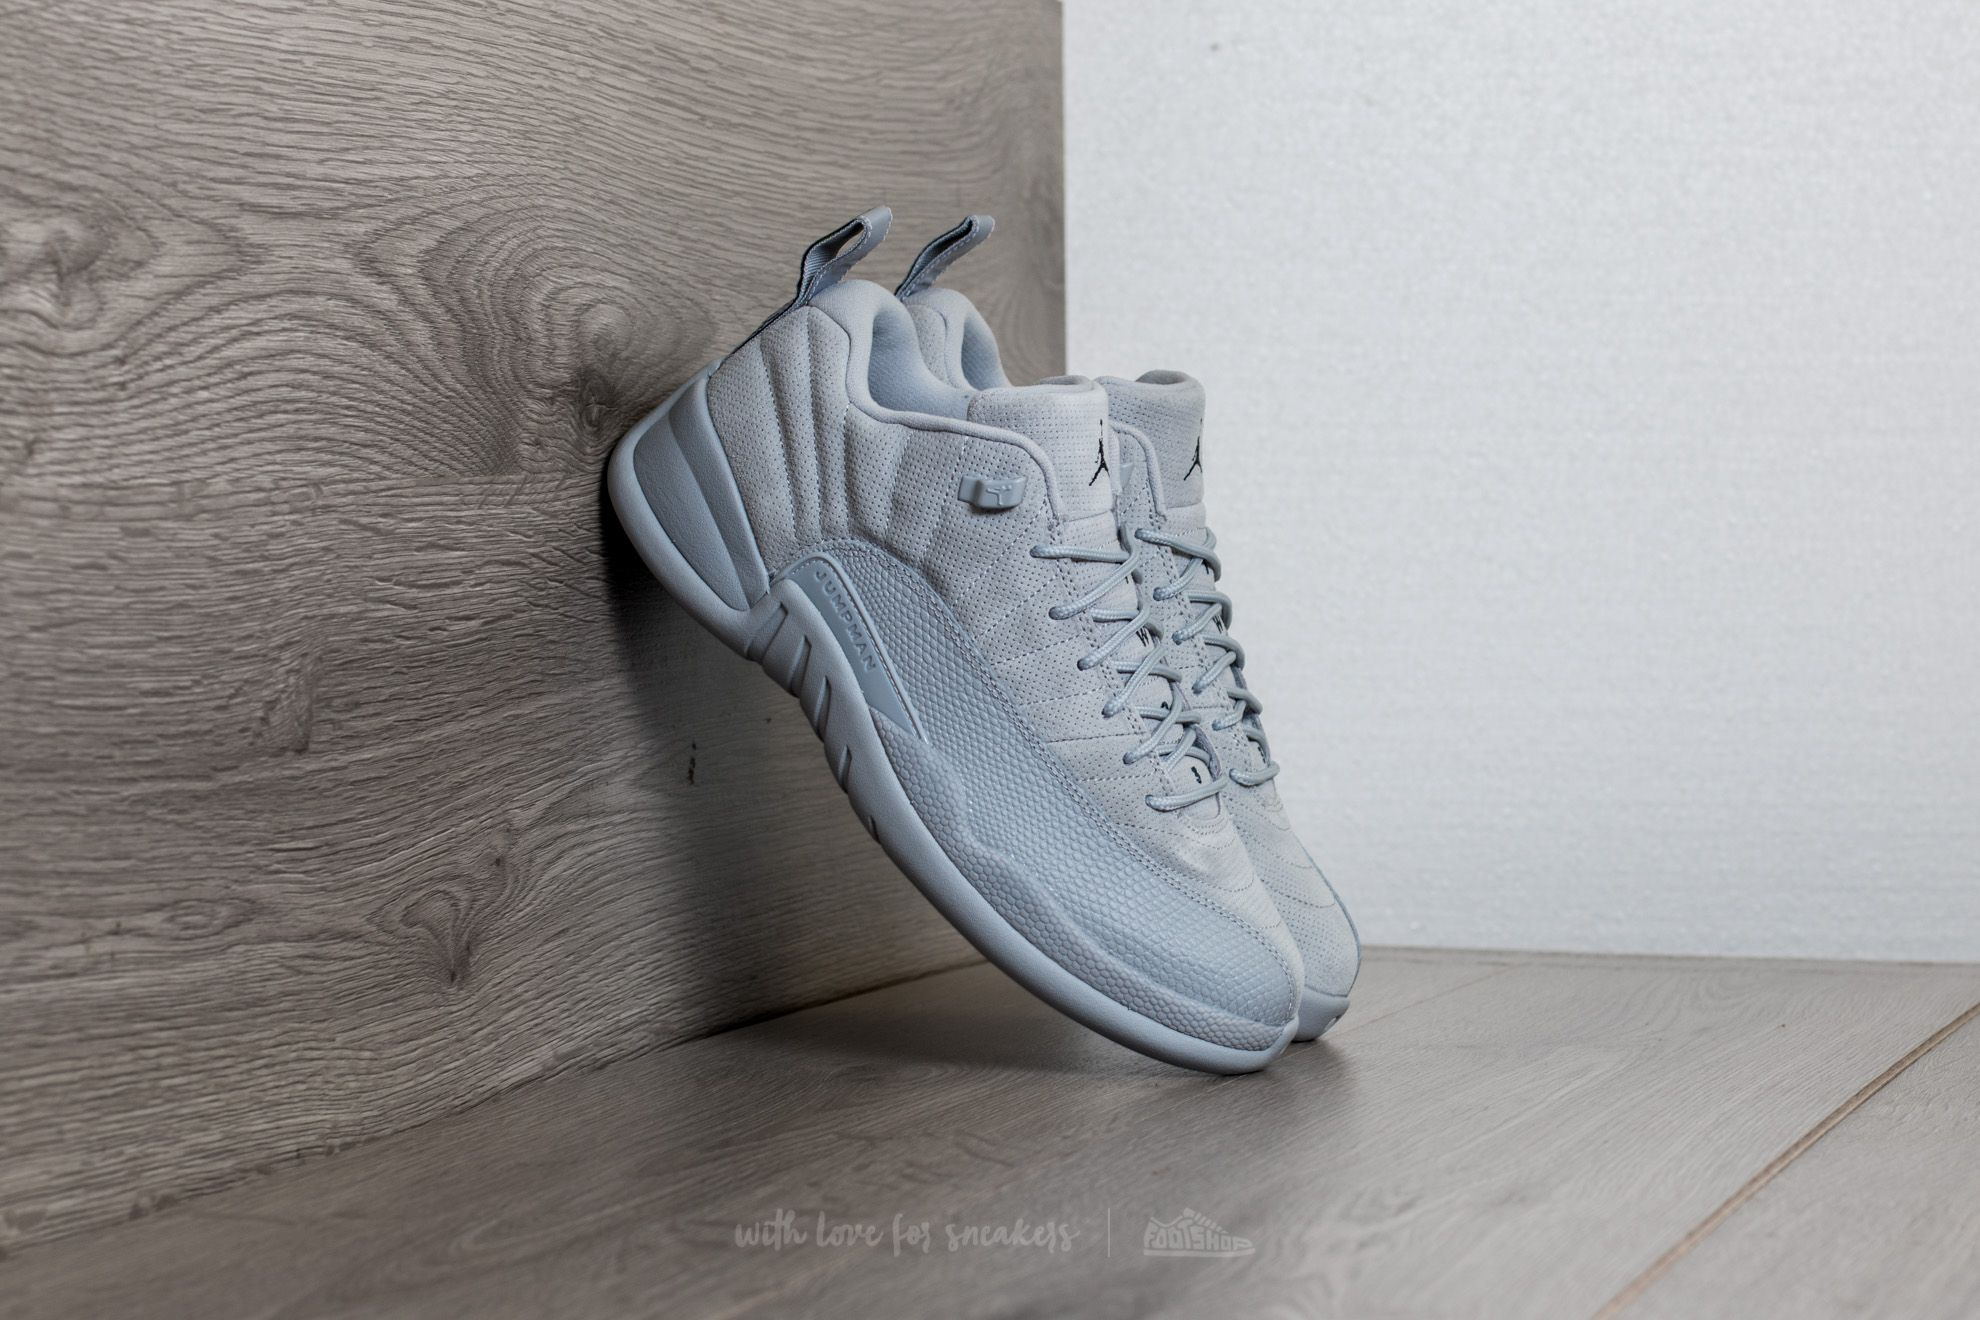 Air Jordan 12 Retro Low Wolf Grey/ Armory Navy - 15042